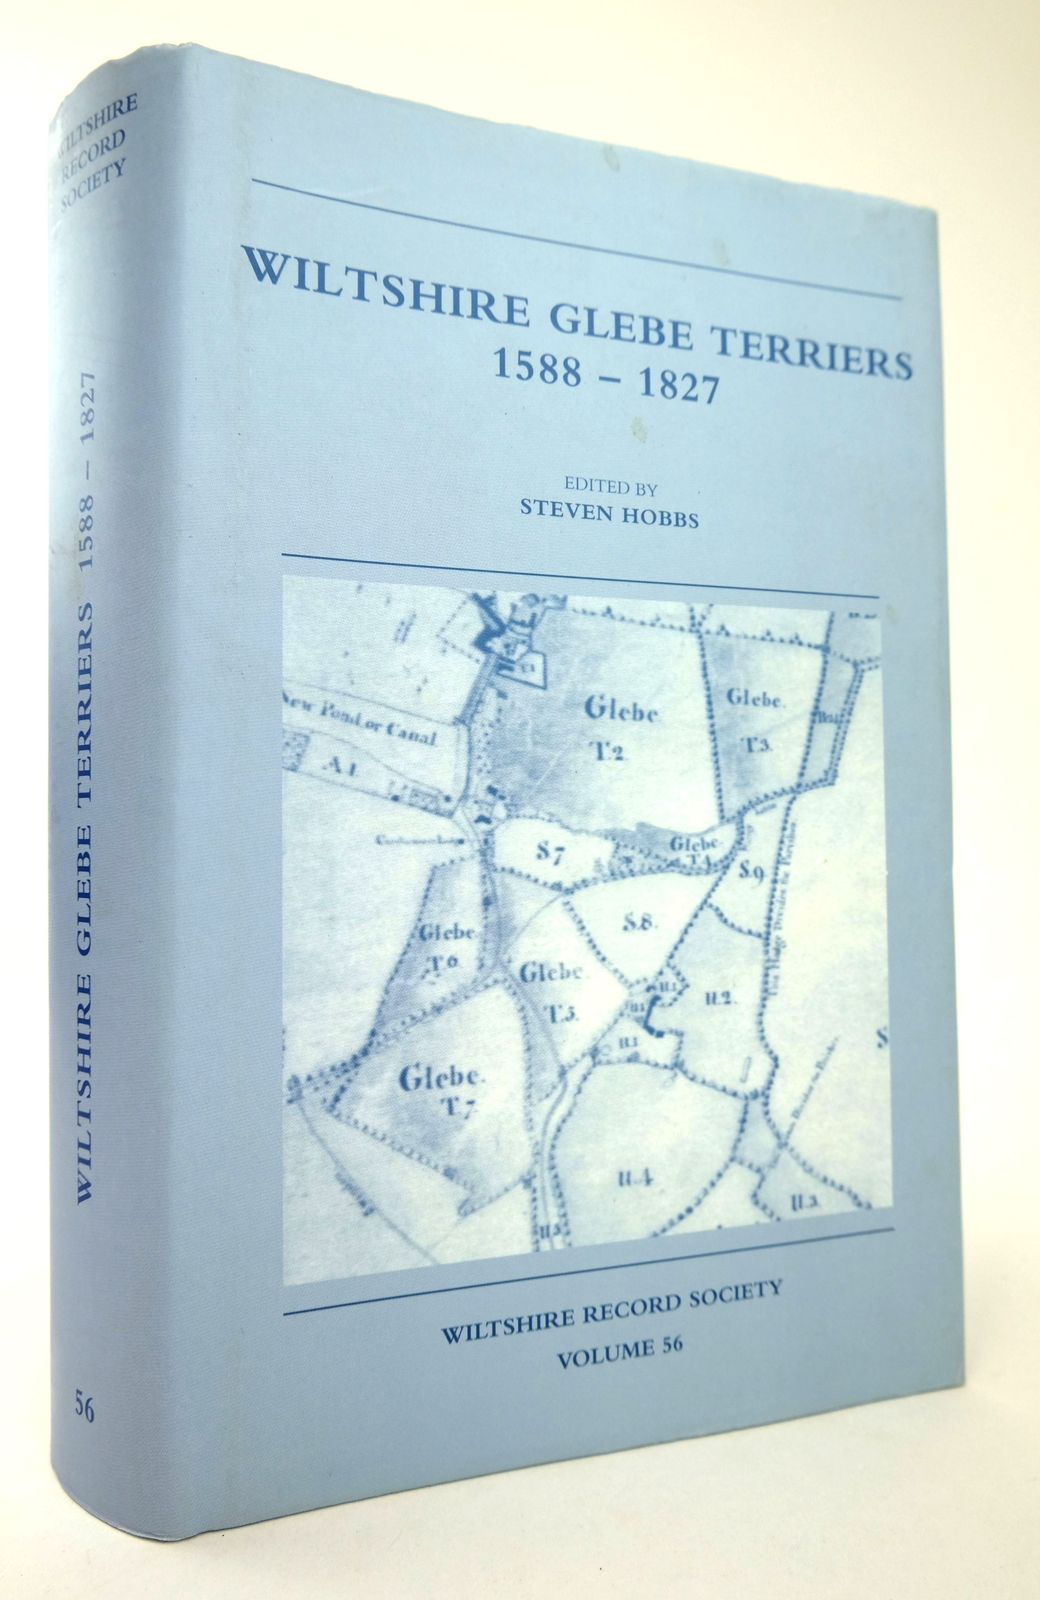 Photo of WILTSHIRE GLEBE TERRIERS 1588-1827 written by Hobbs, Steven published by Wiltshire Record Society (STOCK CODE: 1818739)  for sale by Stella & Rose's Books